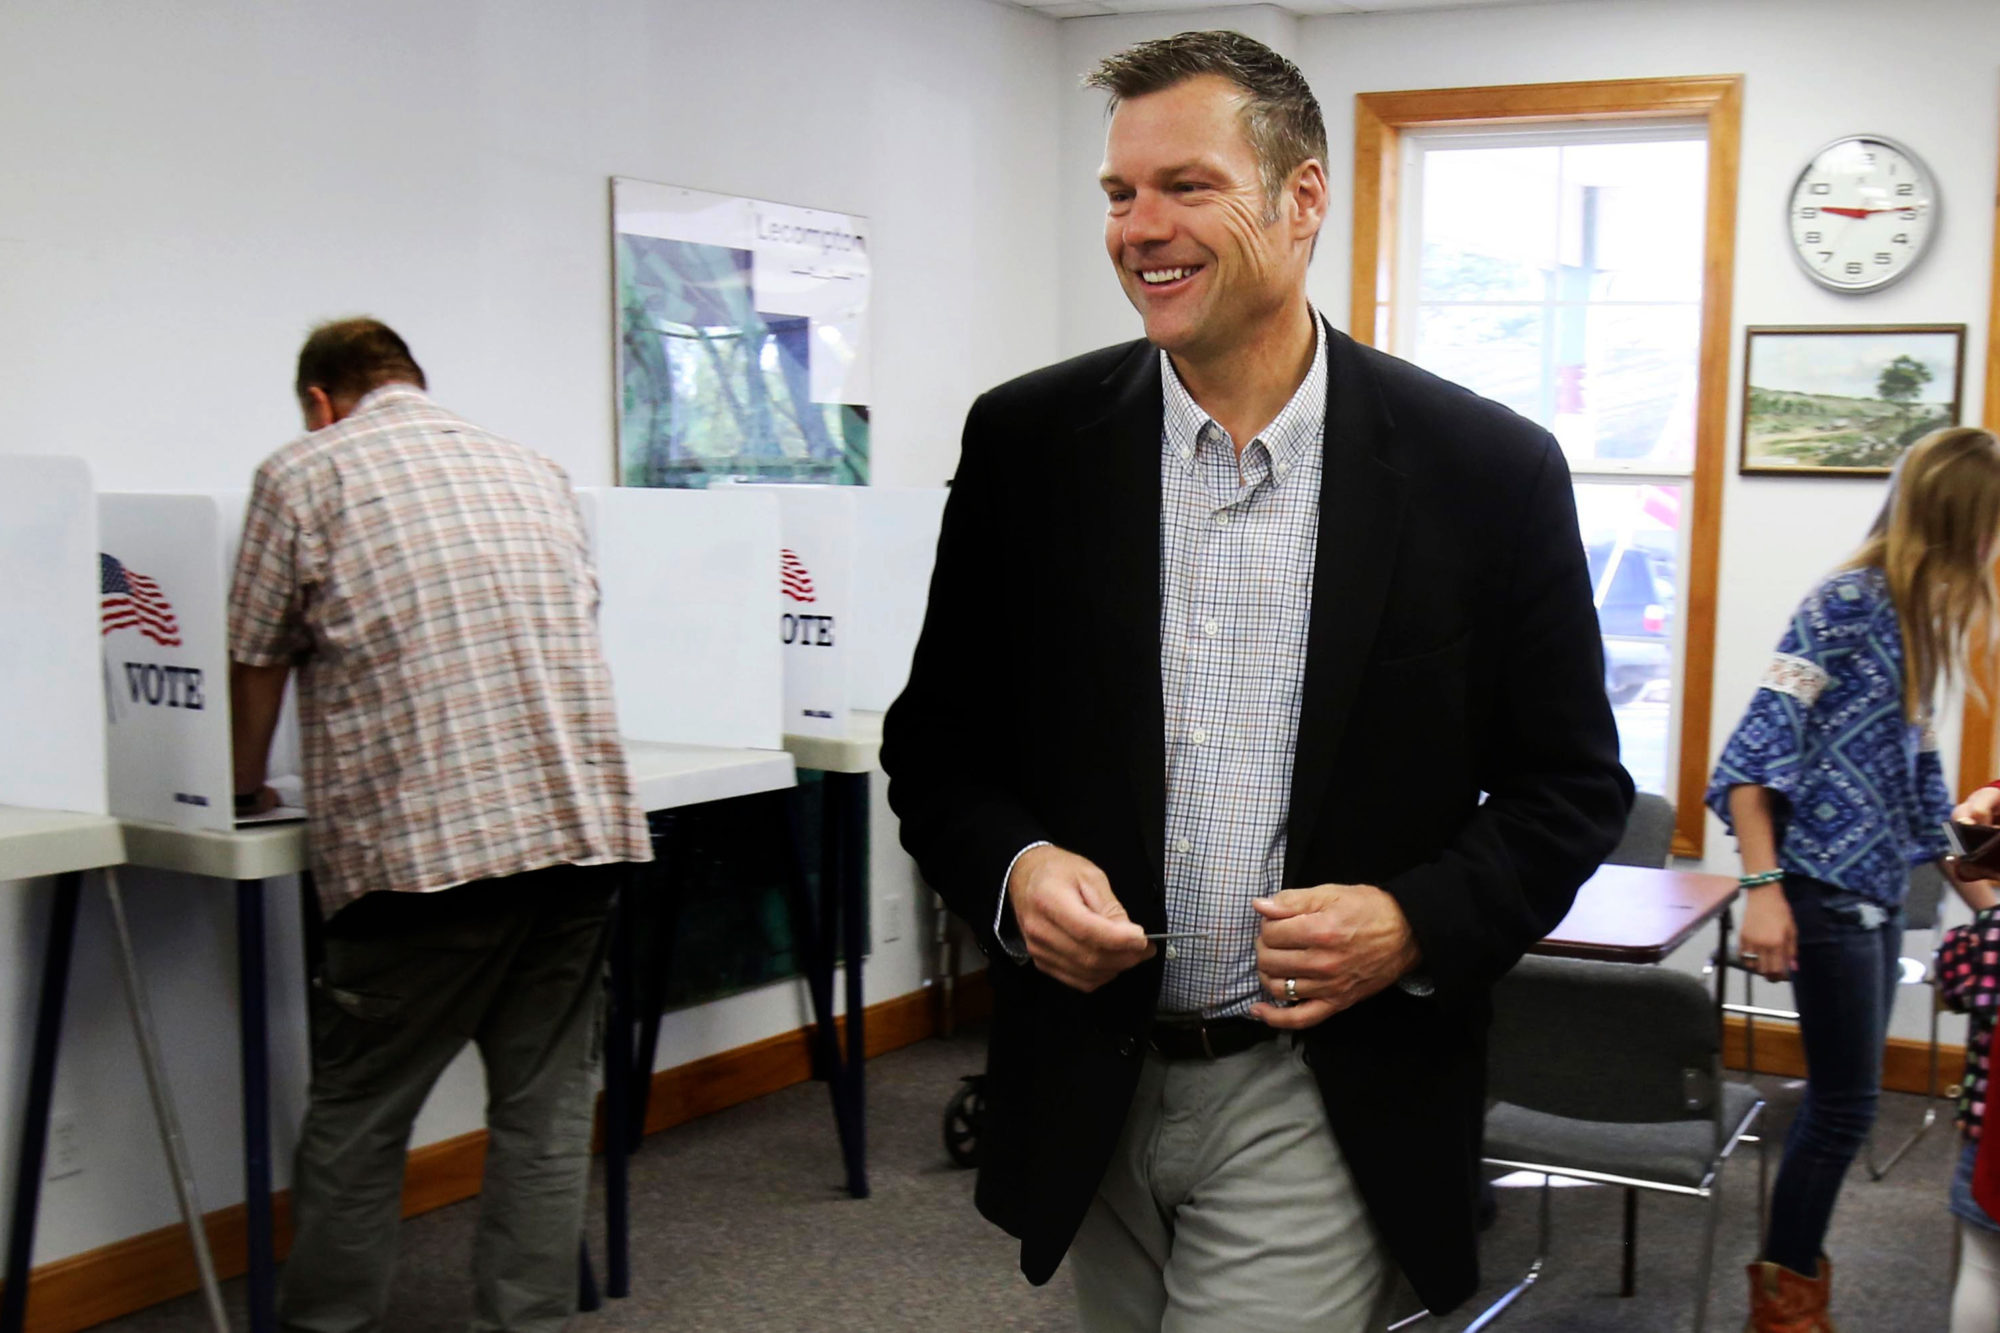 Kansas Abandons Technology Trumpeted by Kris Kobach, Trump's Onetime Voter Fraud Czar